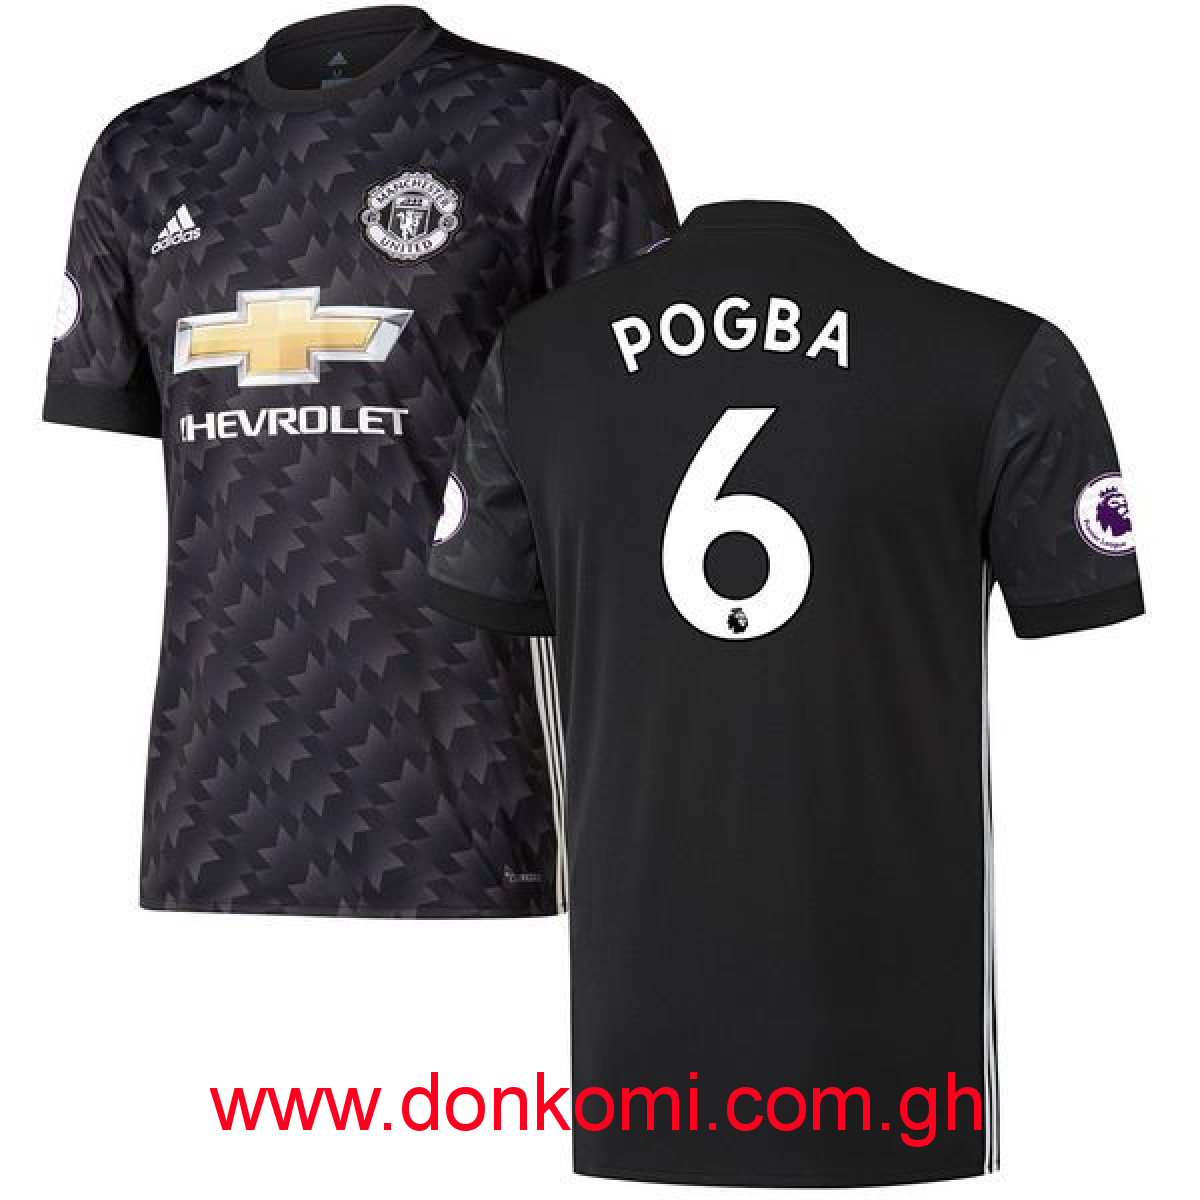 MANCHESTER UNITED AWAY JERSEY (2017/18)